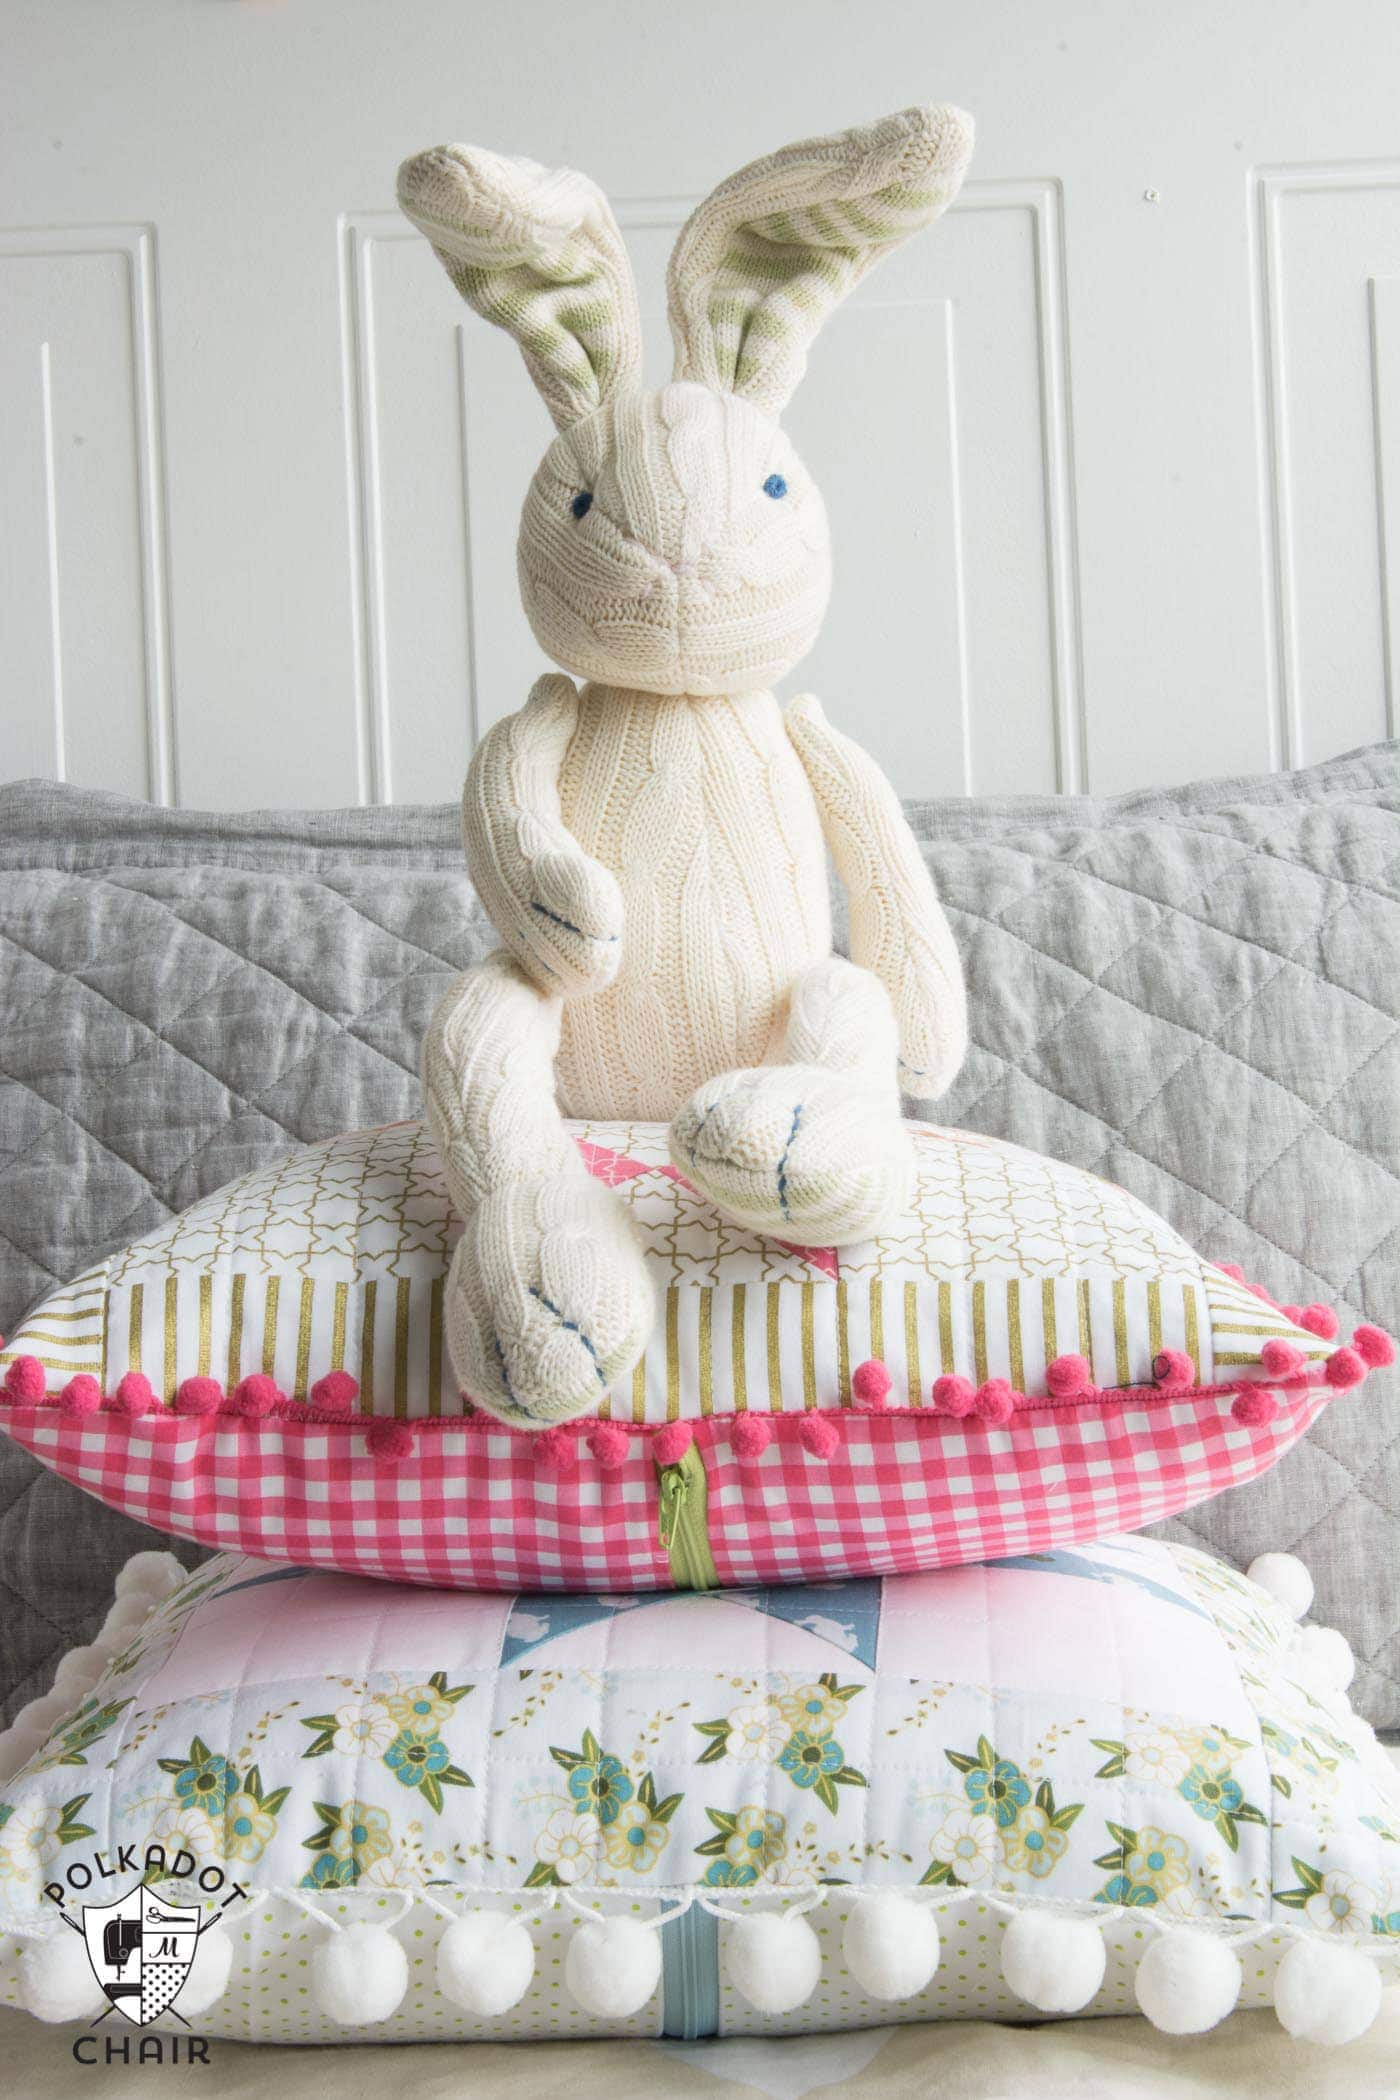 Cute Pom Pom Quilted Pillows made from Wonderland Fabric from Riley Blake Designs